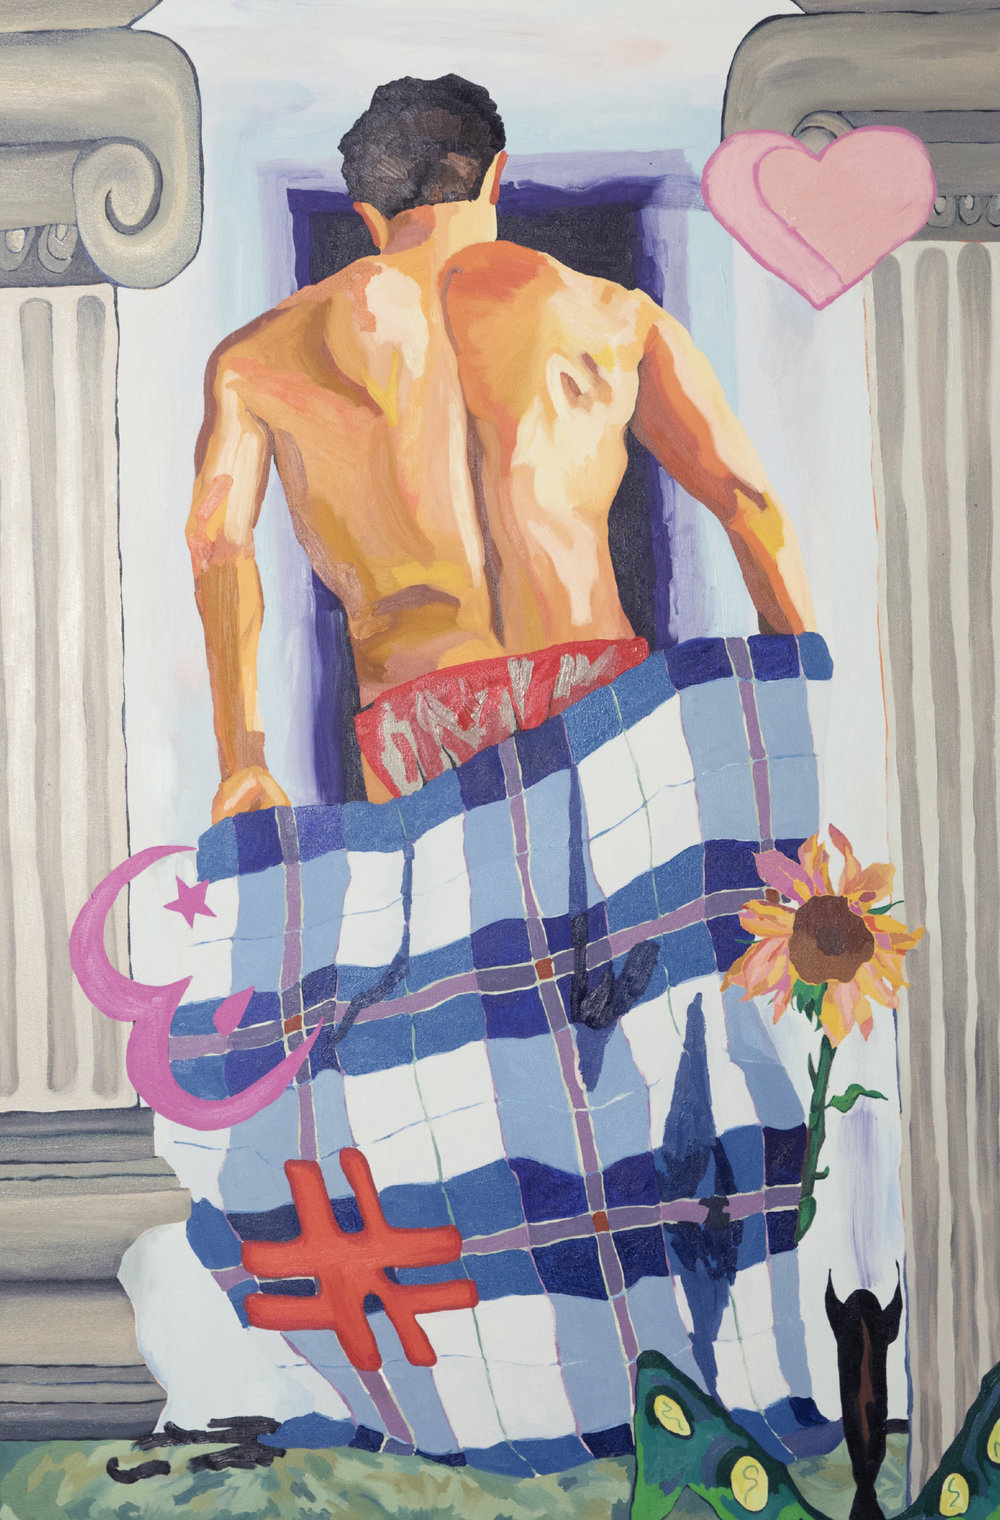 Alex Chaves   Standing Figure  2019 Oil on canvas 182.9 x 121.9 cm  Available